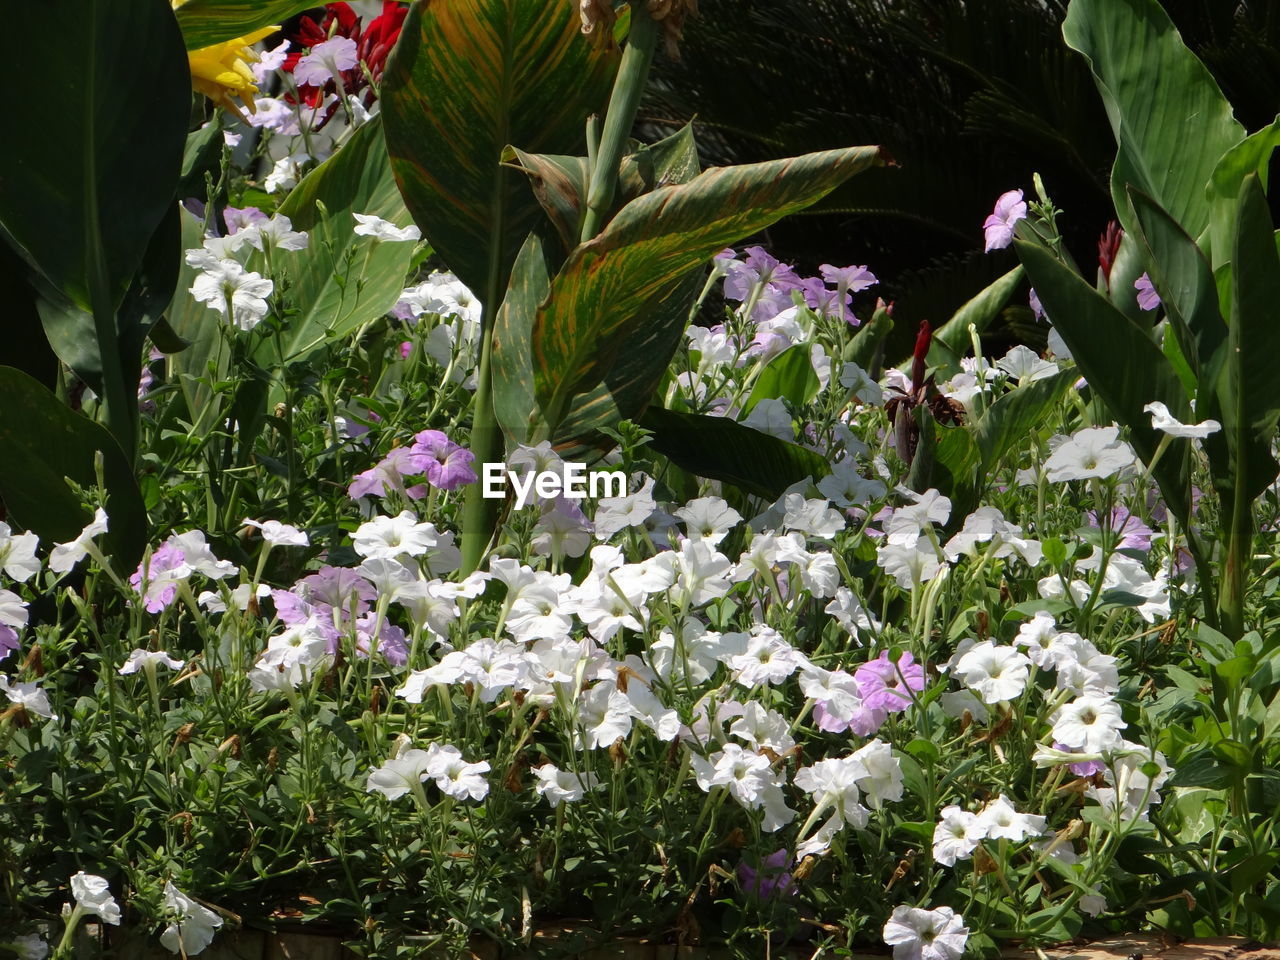 flowering plant, flower, plant, vulnerability, freshness, fragility, beauty in nature, growth, petal, nature, close-up, no people, day, flower head, white color, inflorescence, outdoors, plant part, leaf, botany, purple, flowerbed